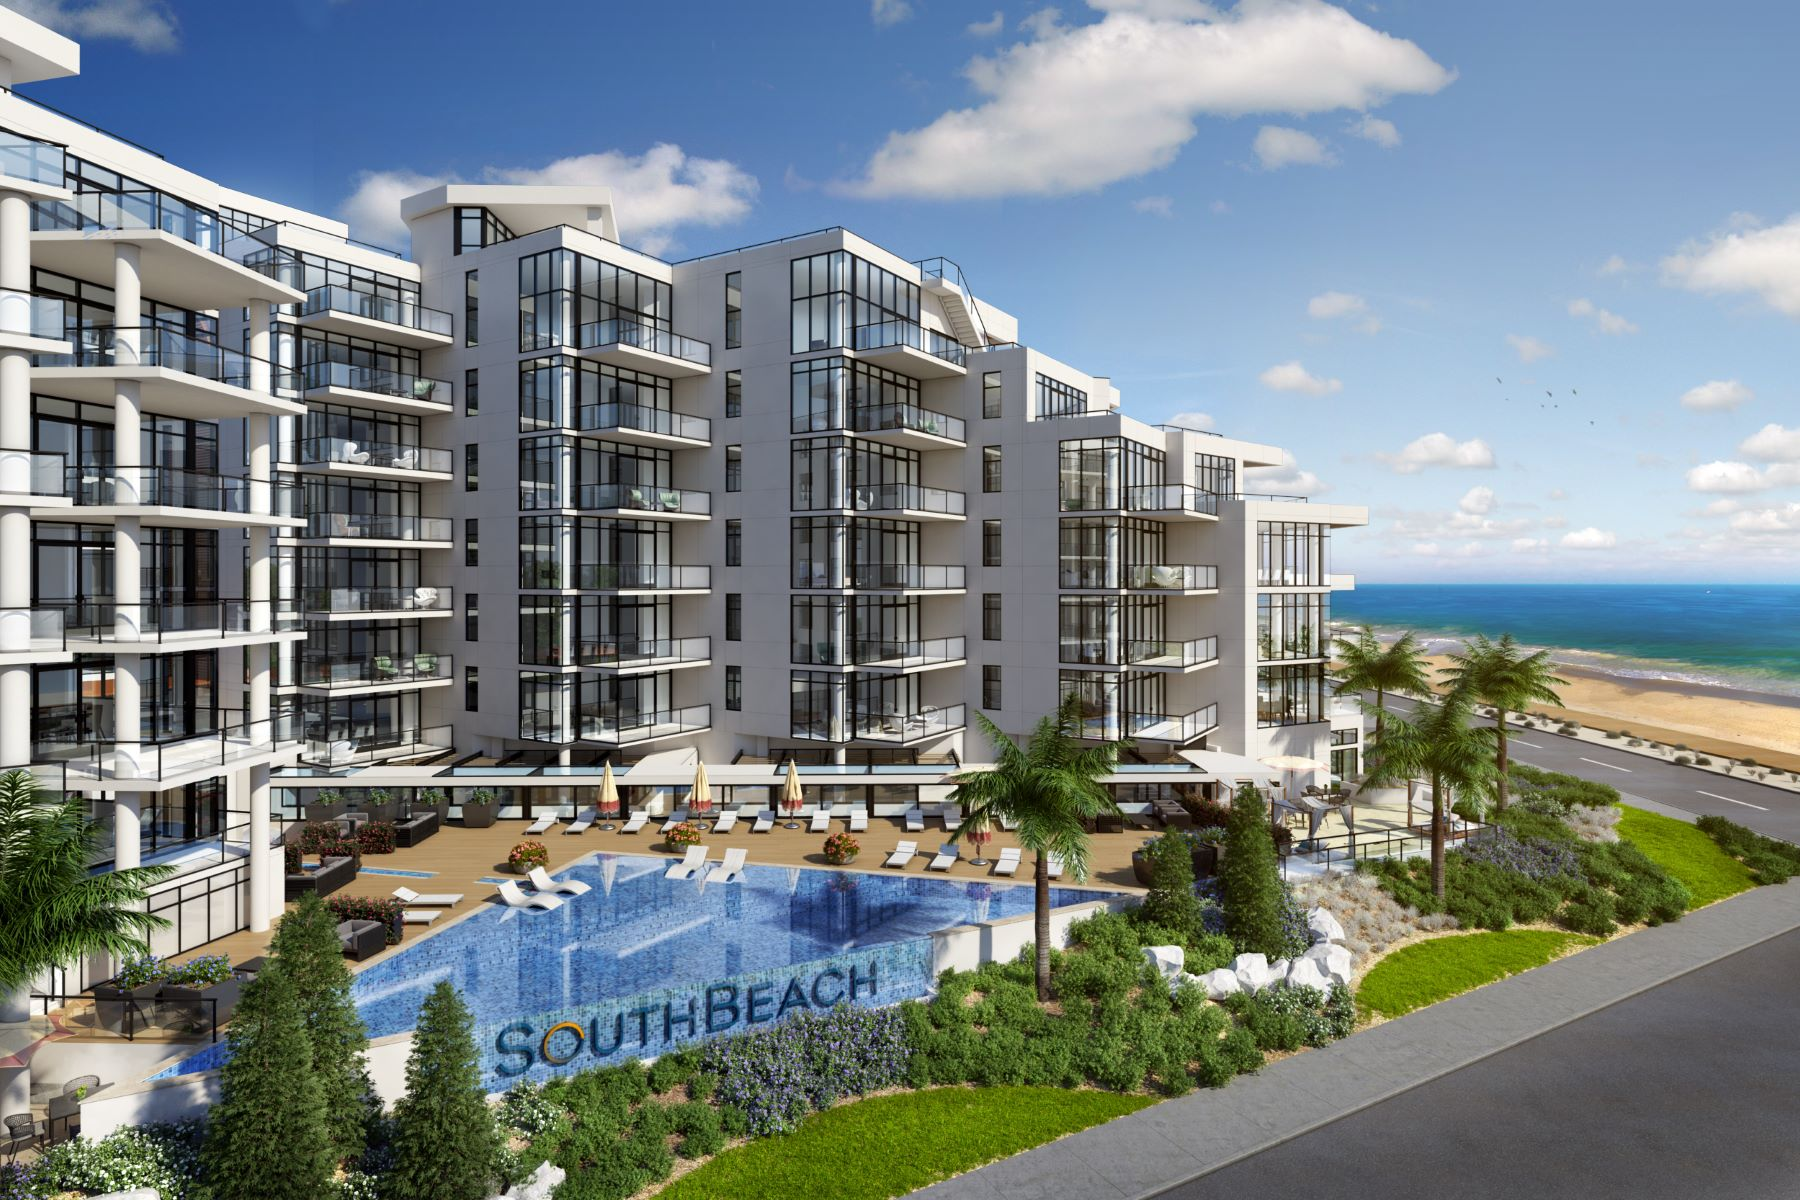 Condominiums for Sale at South Beach at Long Branch 350 Ocean Avenue 604/605 Long Branch, New Jersey 07740 United States